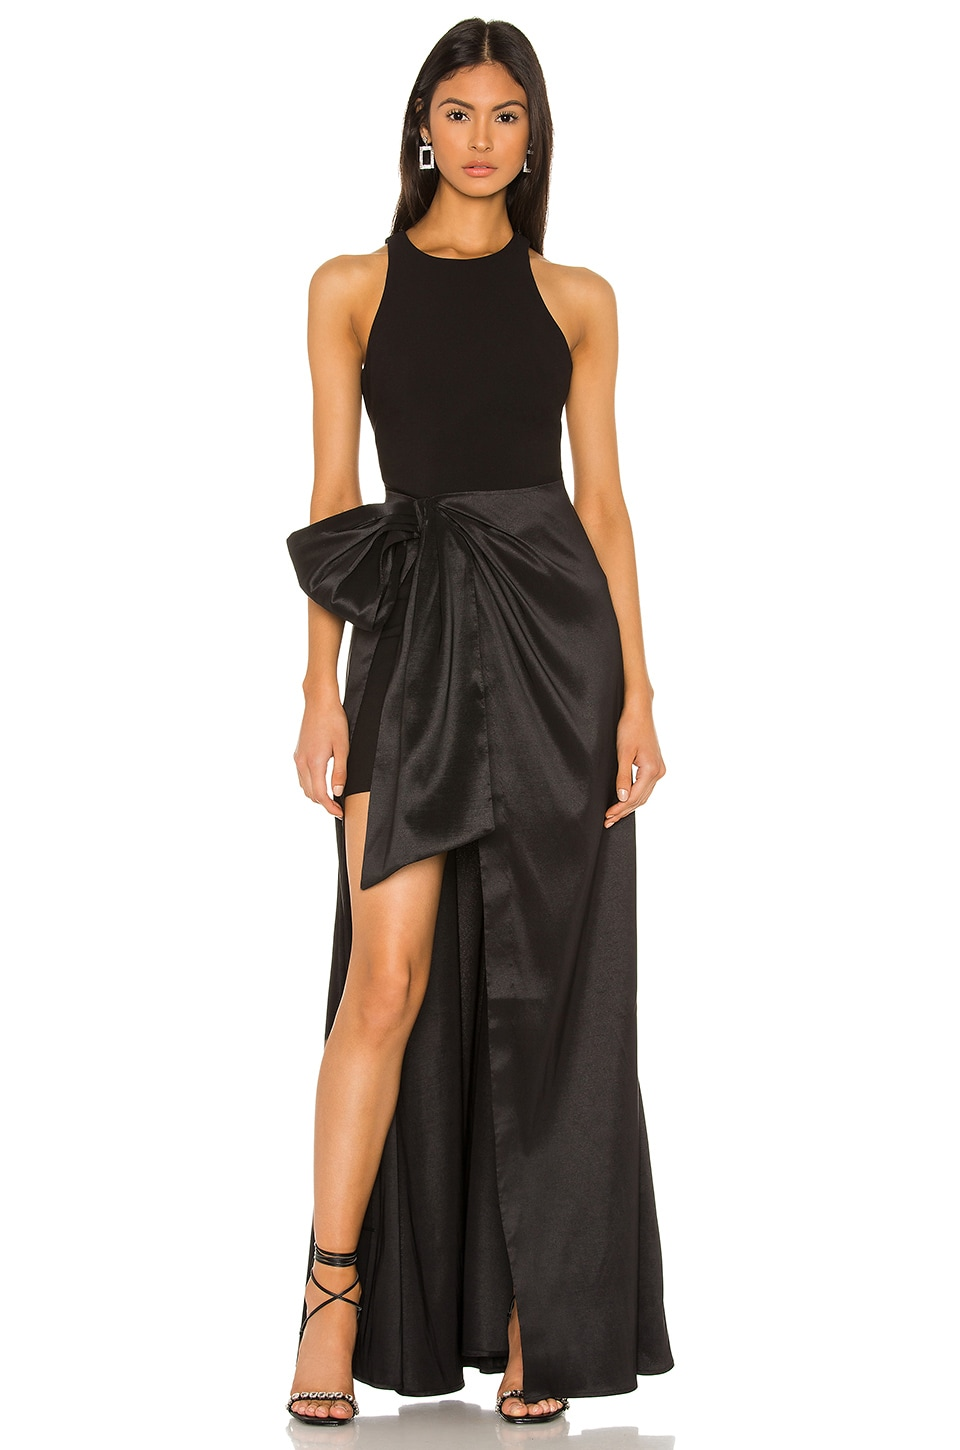 Mena Gown                   LIKELY                                                                                                                             CA$ 455.10 9